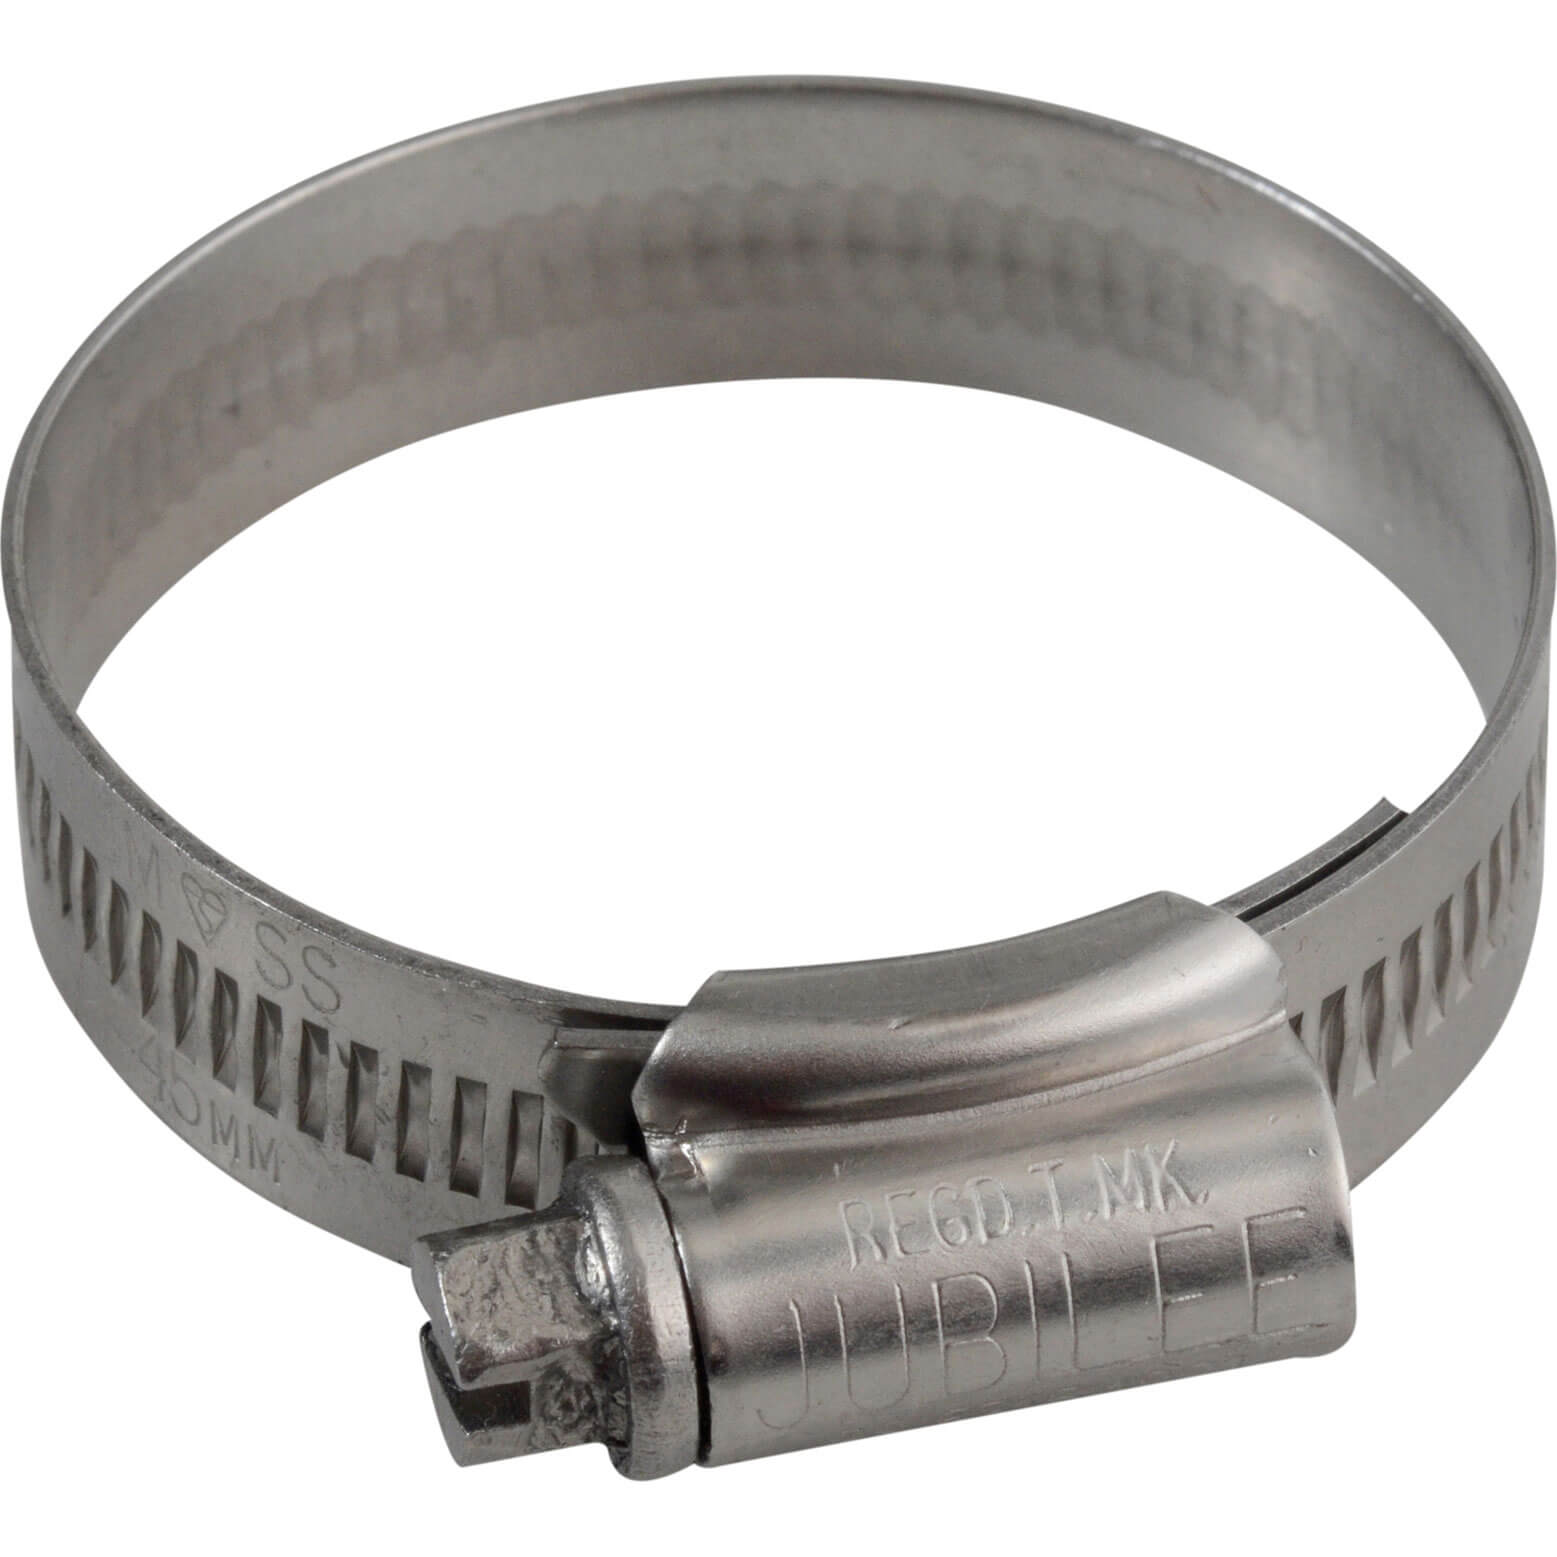 Image of Jubilee Stainless Steel Hose Clip 32mm - 45mm Pack of 1